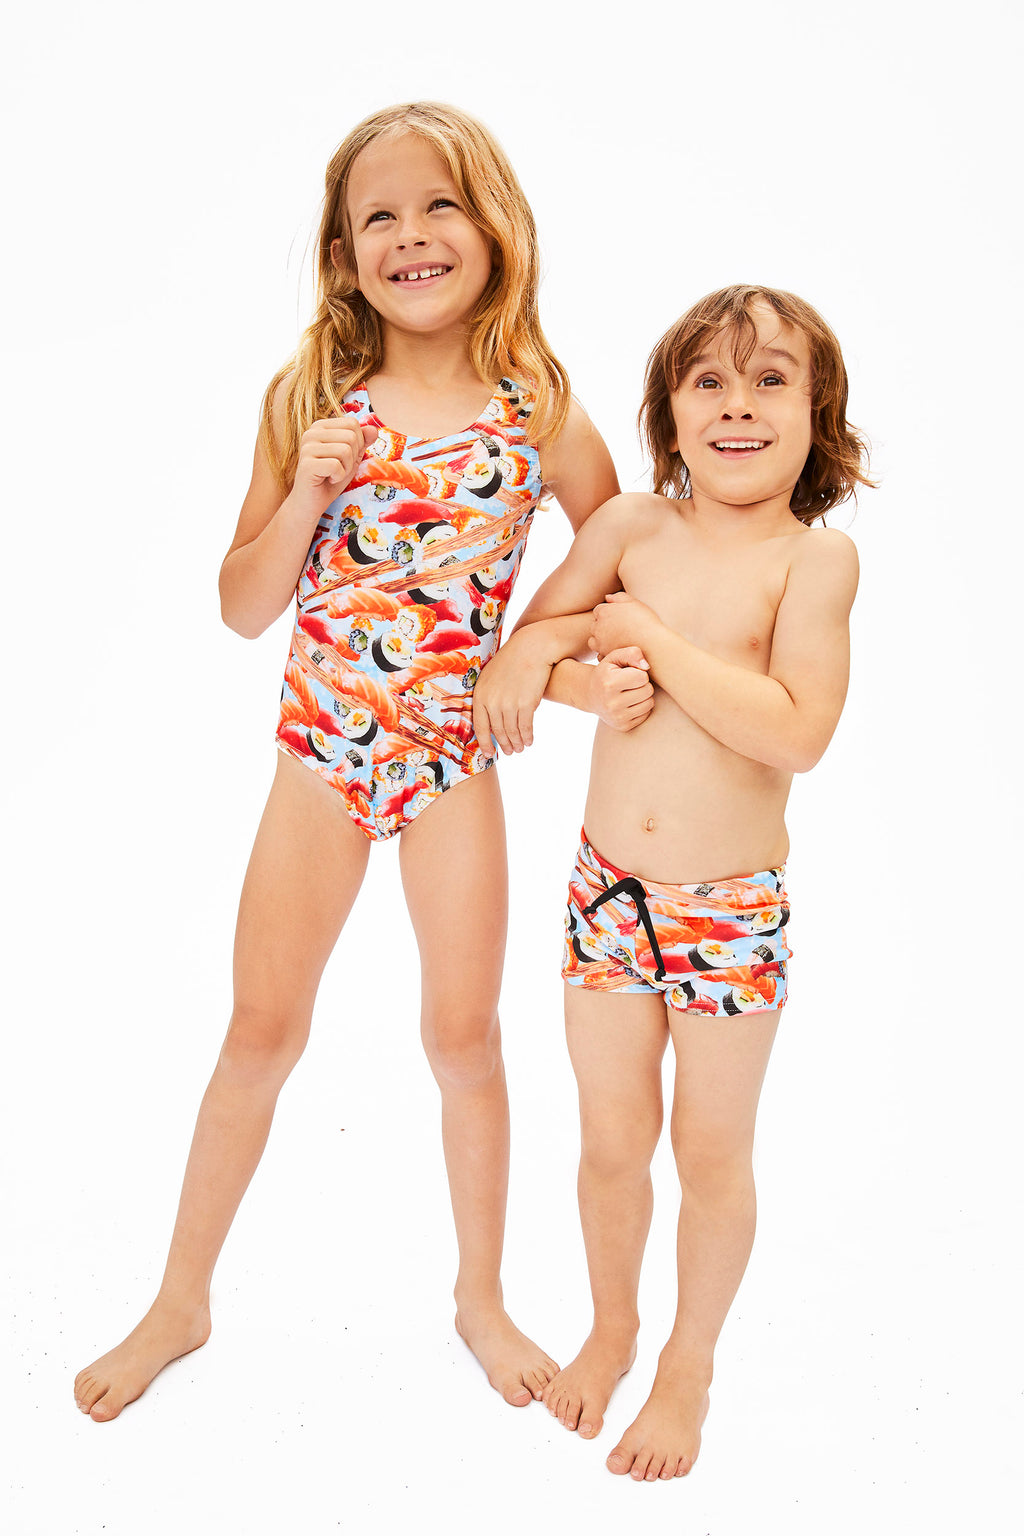 sushi print swimsuits for kids, made in Canada by Bathing Belle Swimwear